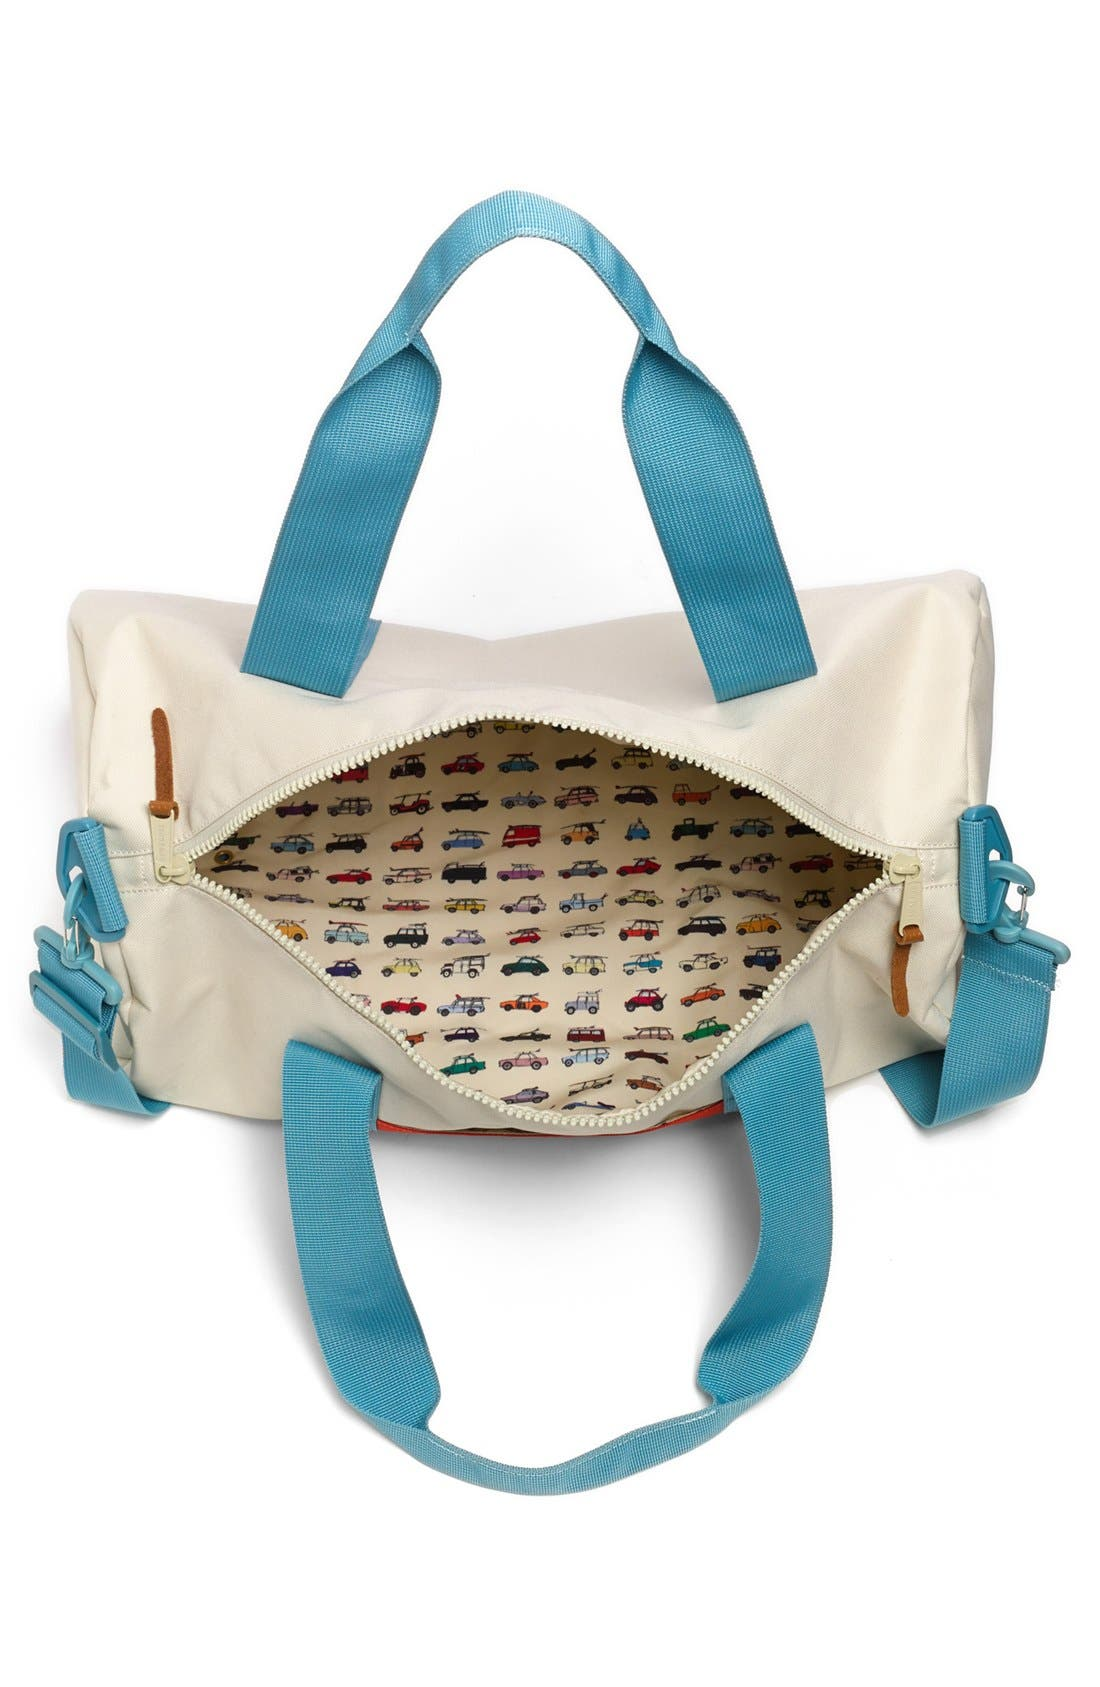 Alternate Image 3  - Herschel Supply Co. 'Sutton - Rad Cars with Rad Surfboards Collection' Midsize Duffel Bag